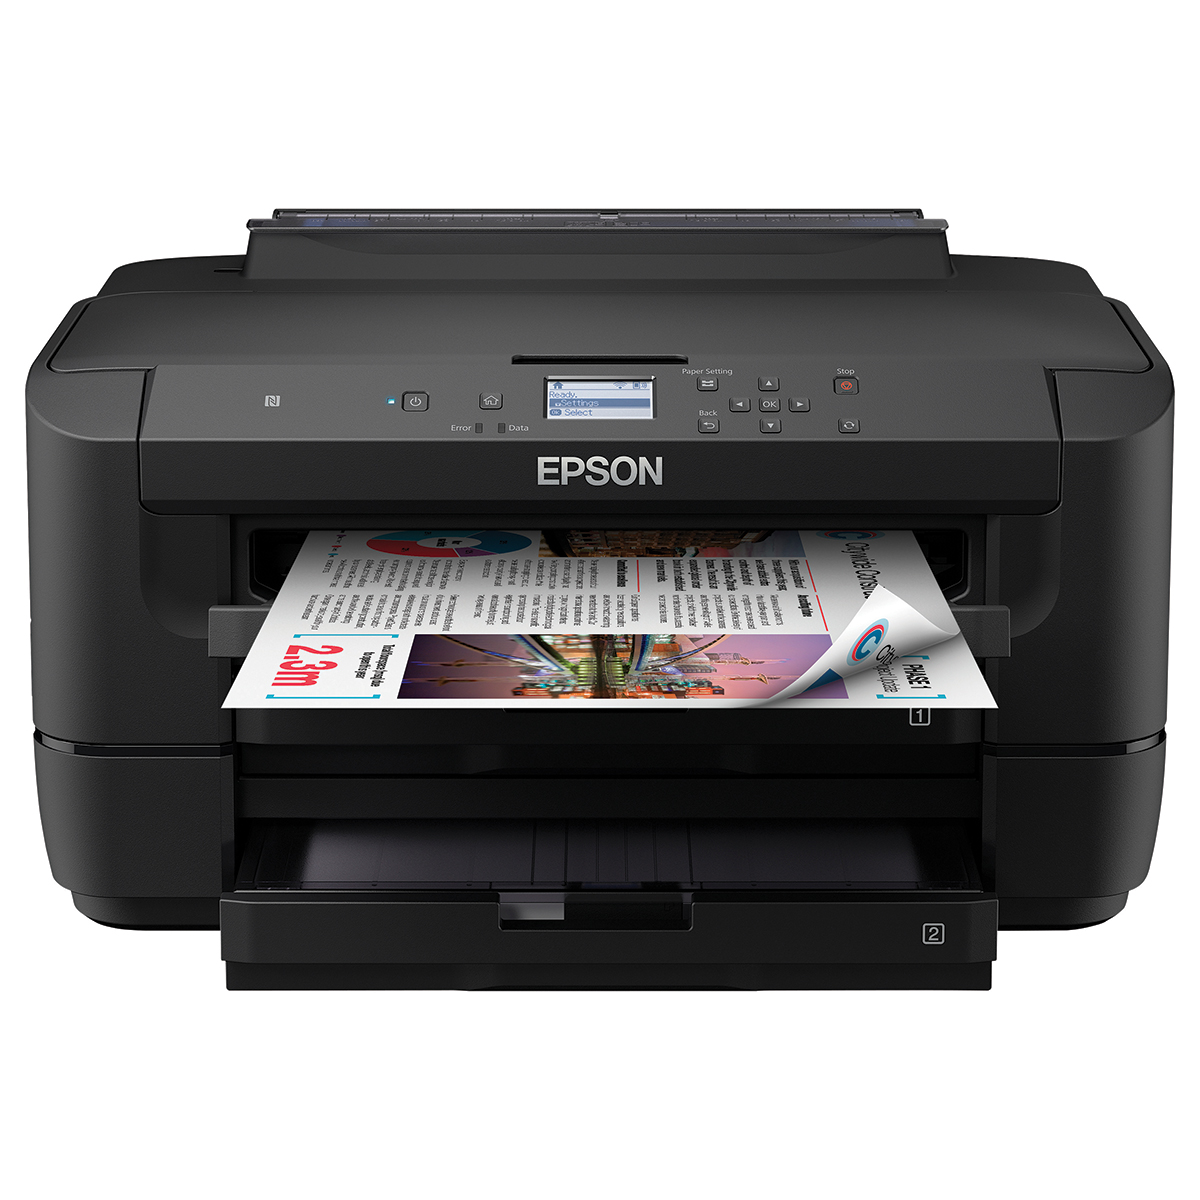 Epson WorkForce WF-7210DTW A3 Colour Inkjet Printer